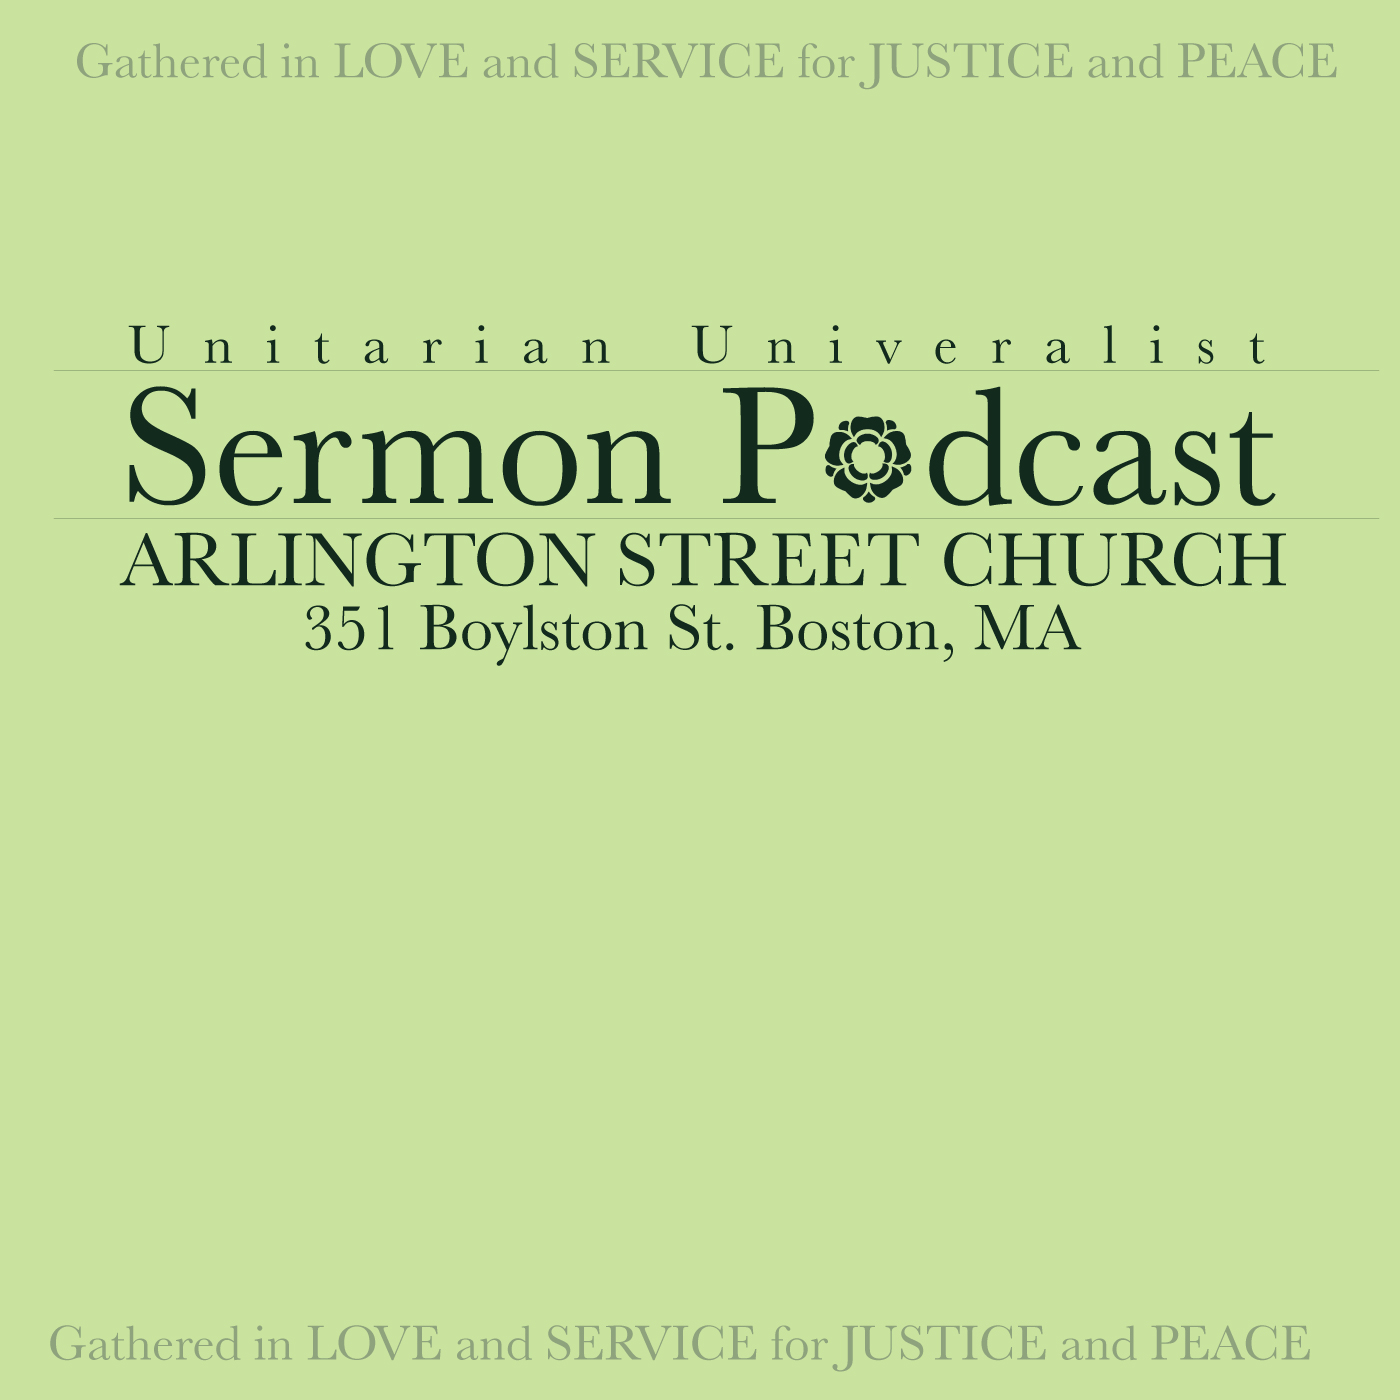 Arlington Street Church Sermon Podcast